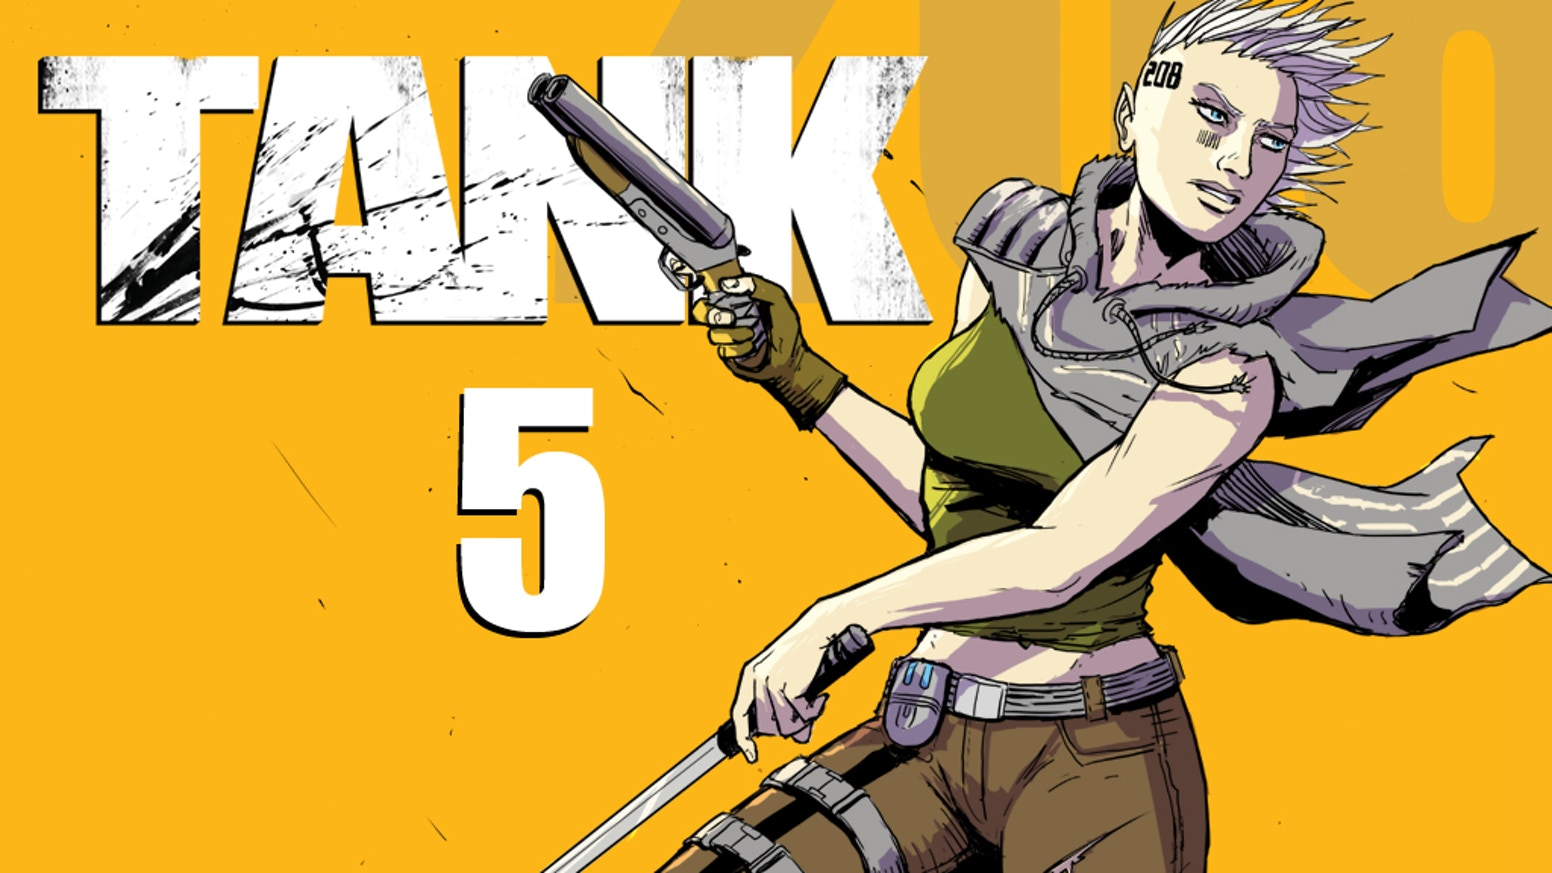 A post-apocalyptic action adventure comic book. (English / Deutsch)